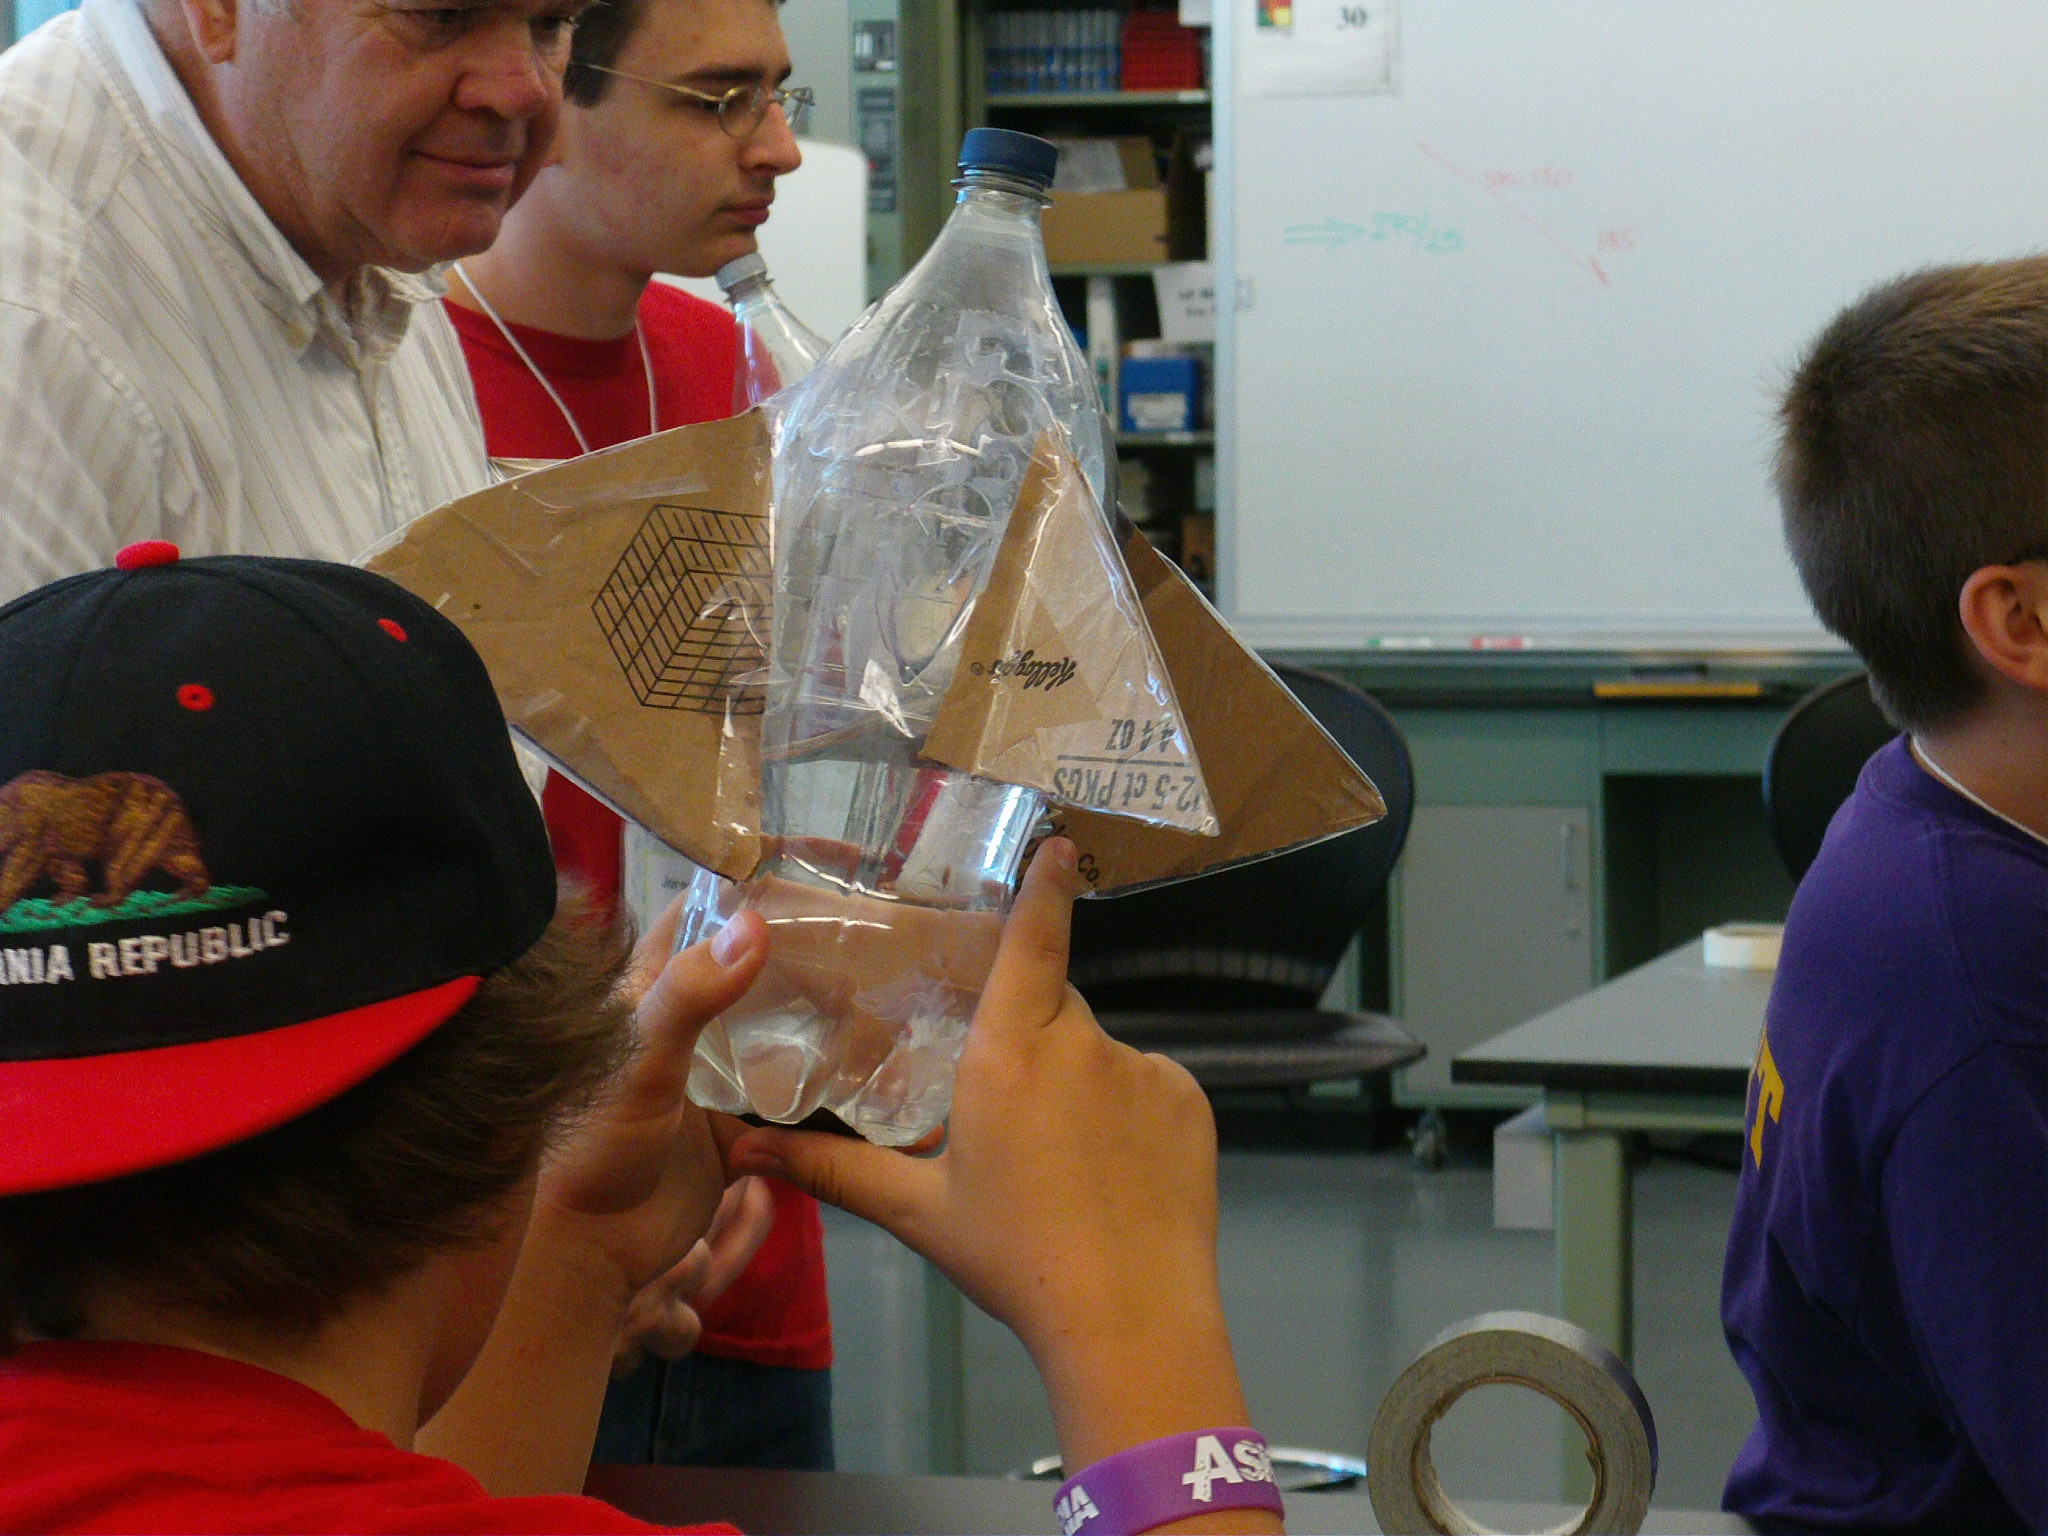 Campers build rockets out of two liter bottles which they then launch outside.